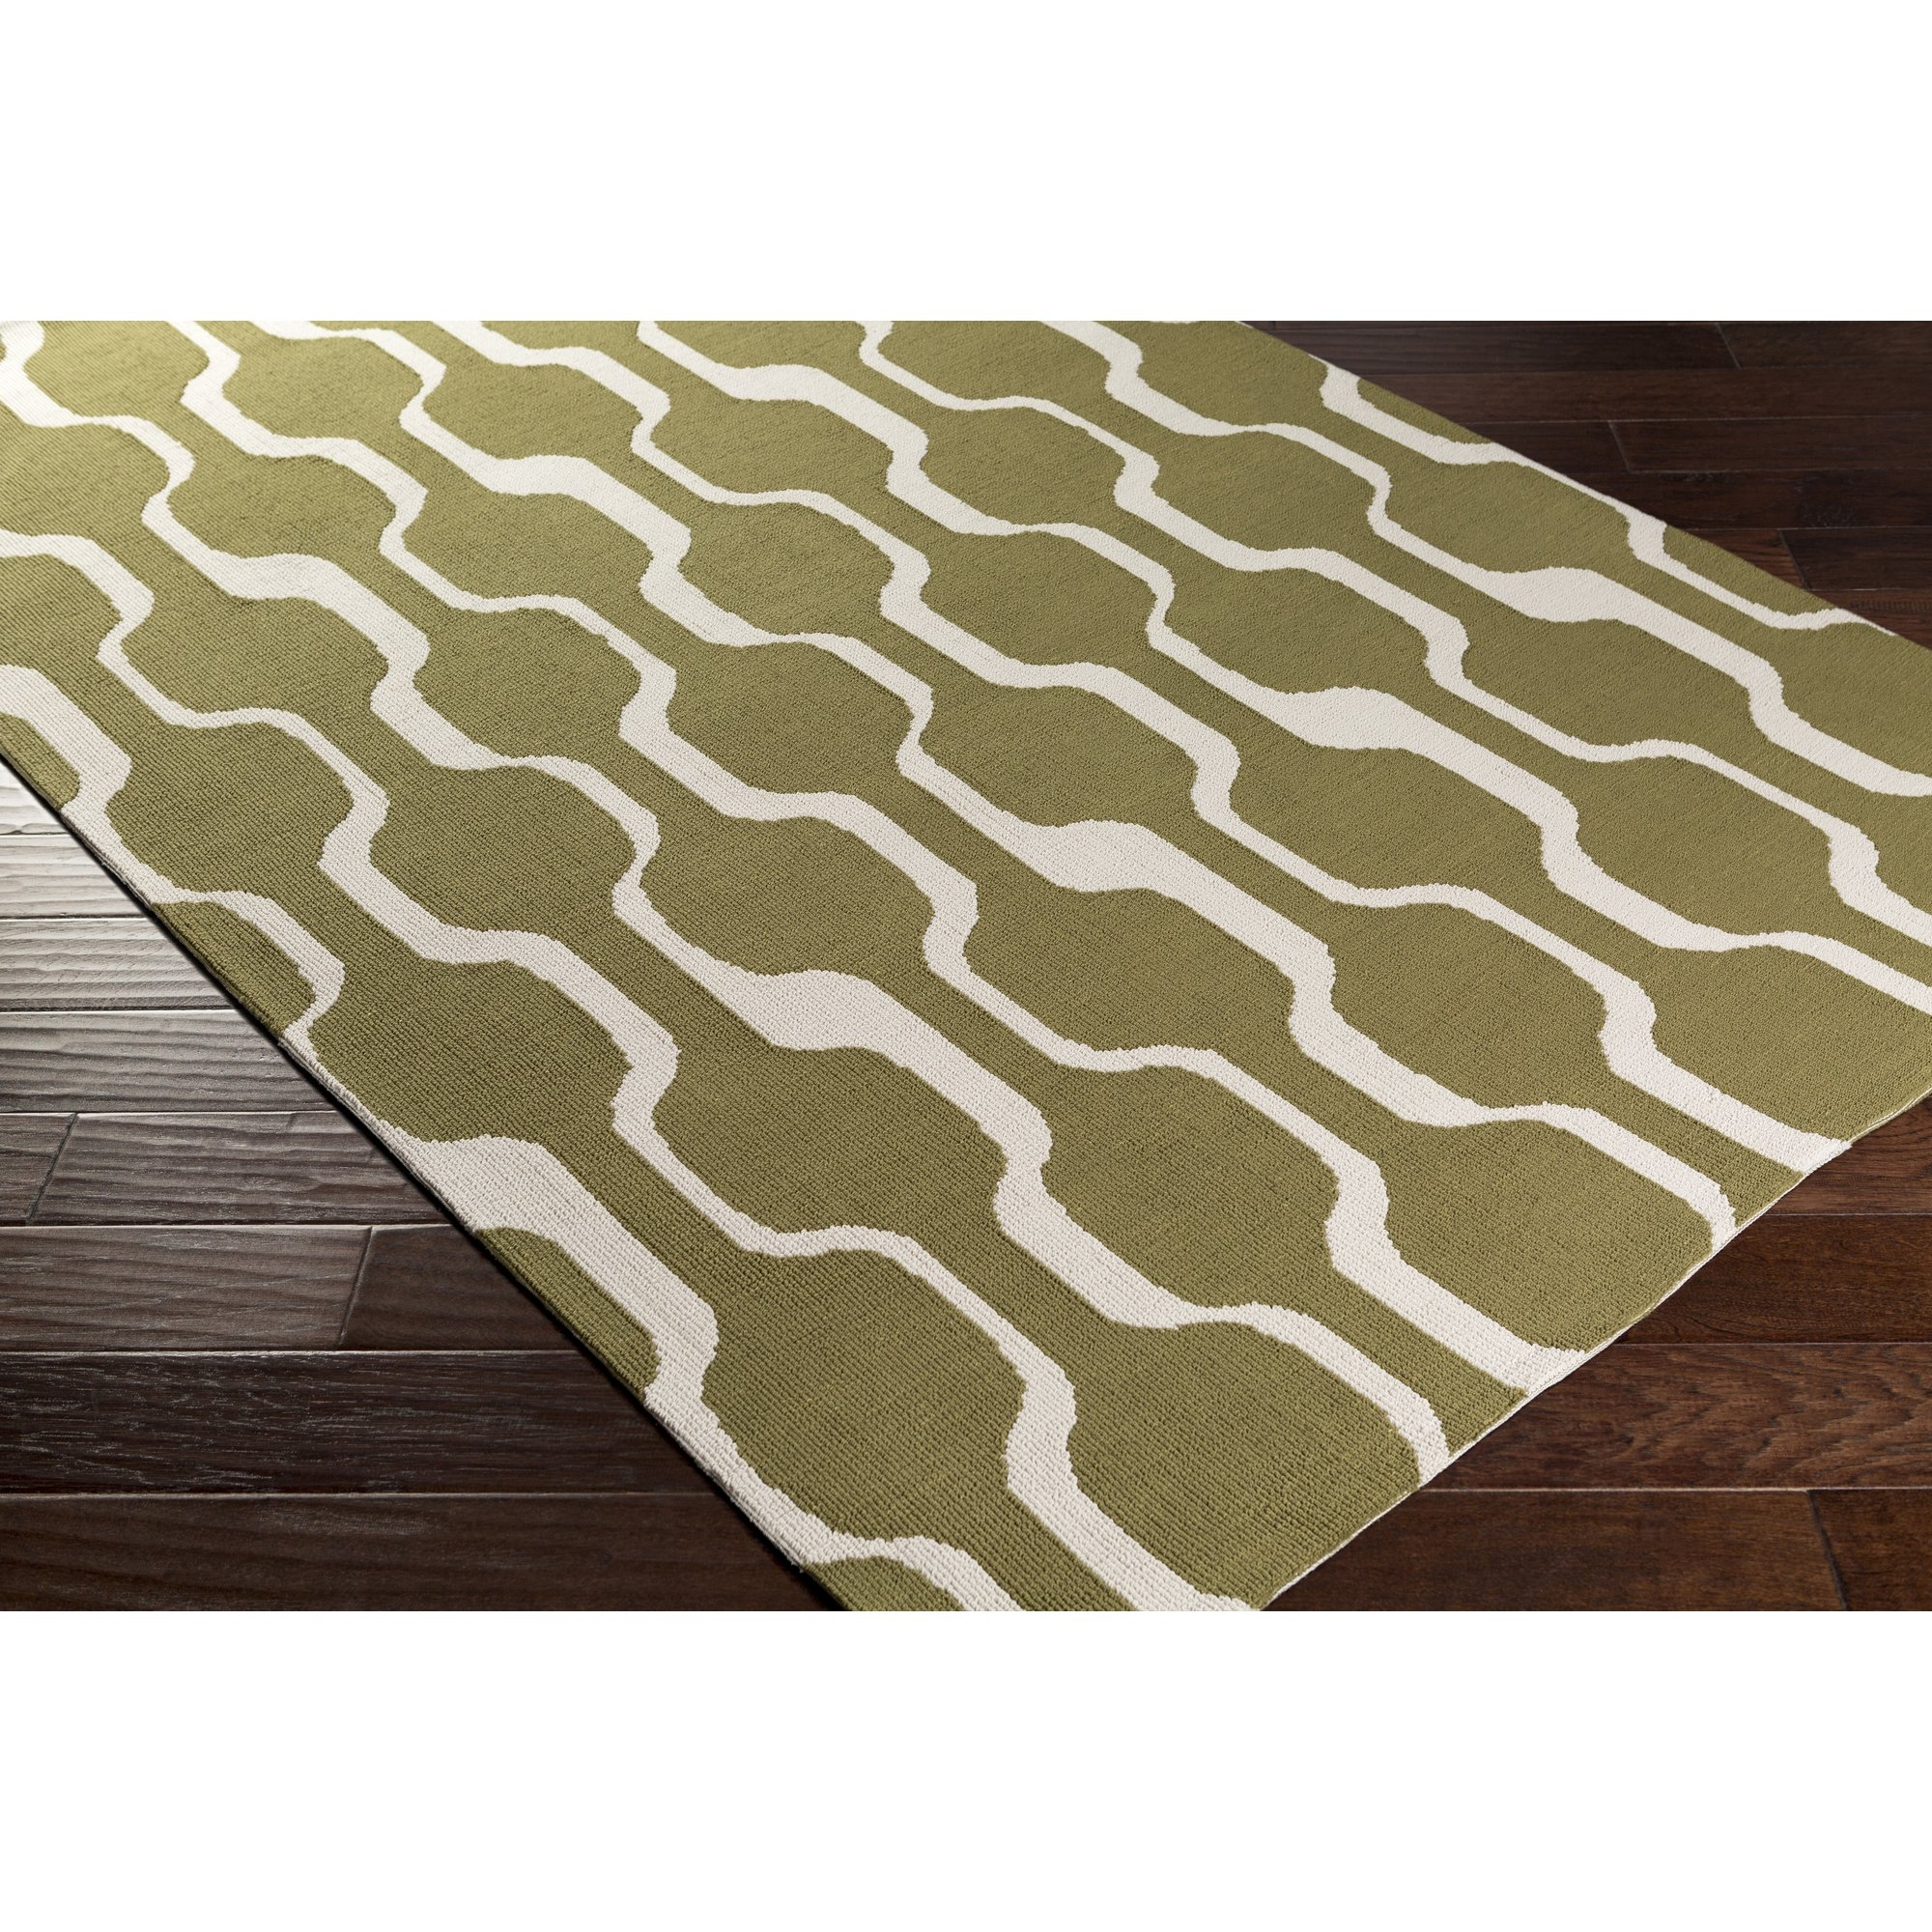 plan kelly inside designs rug area plans sage intended cheap wool rugs for emerald throw green olive